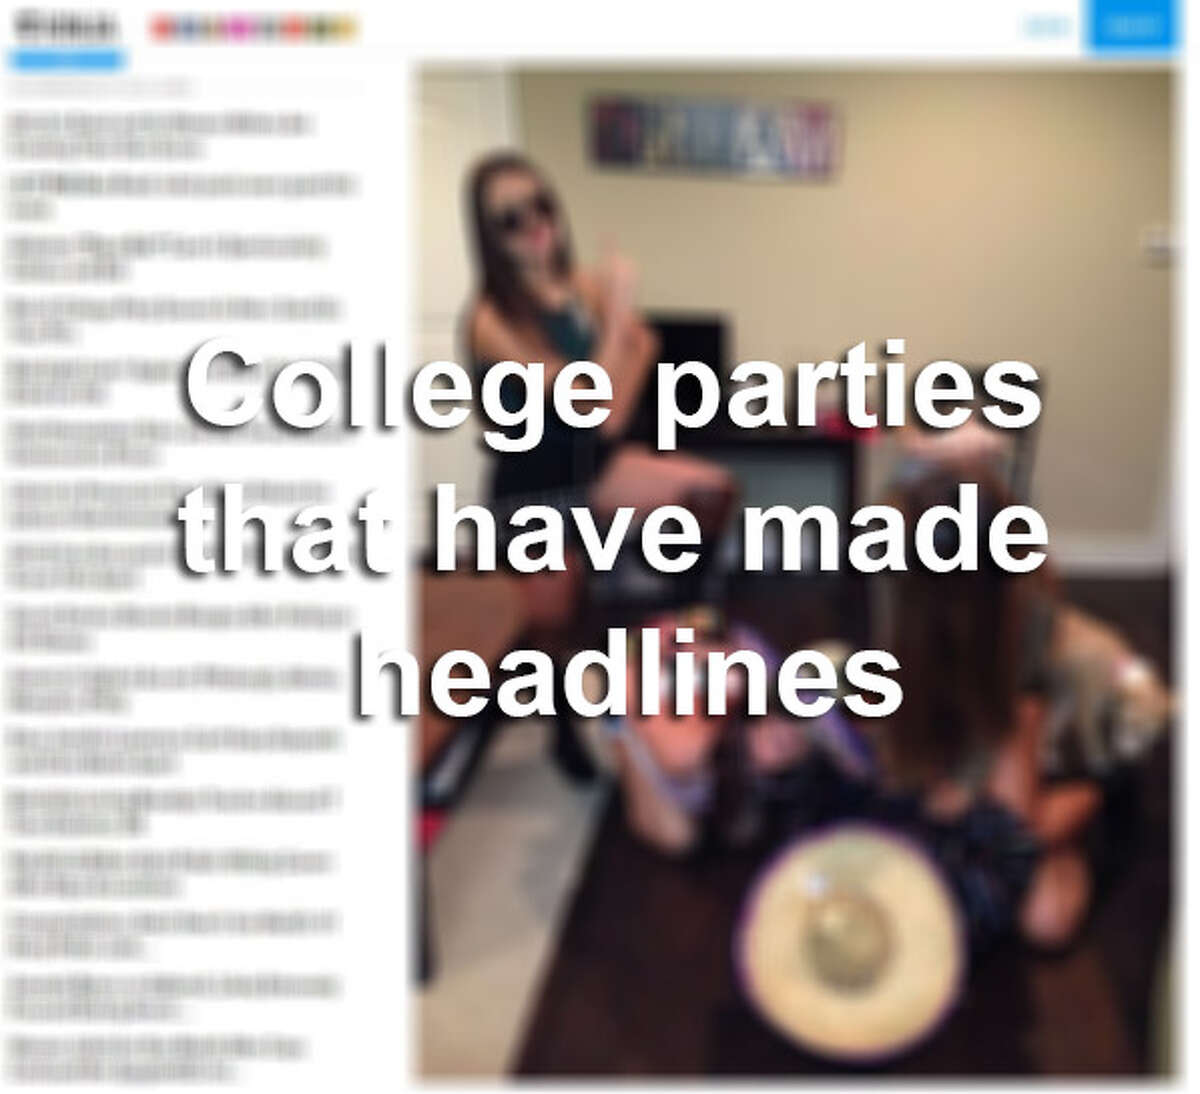 Click through the gallery to see college parties that have grabbed headlines.